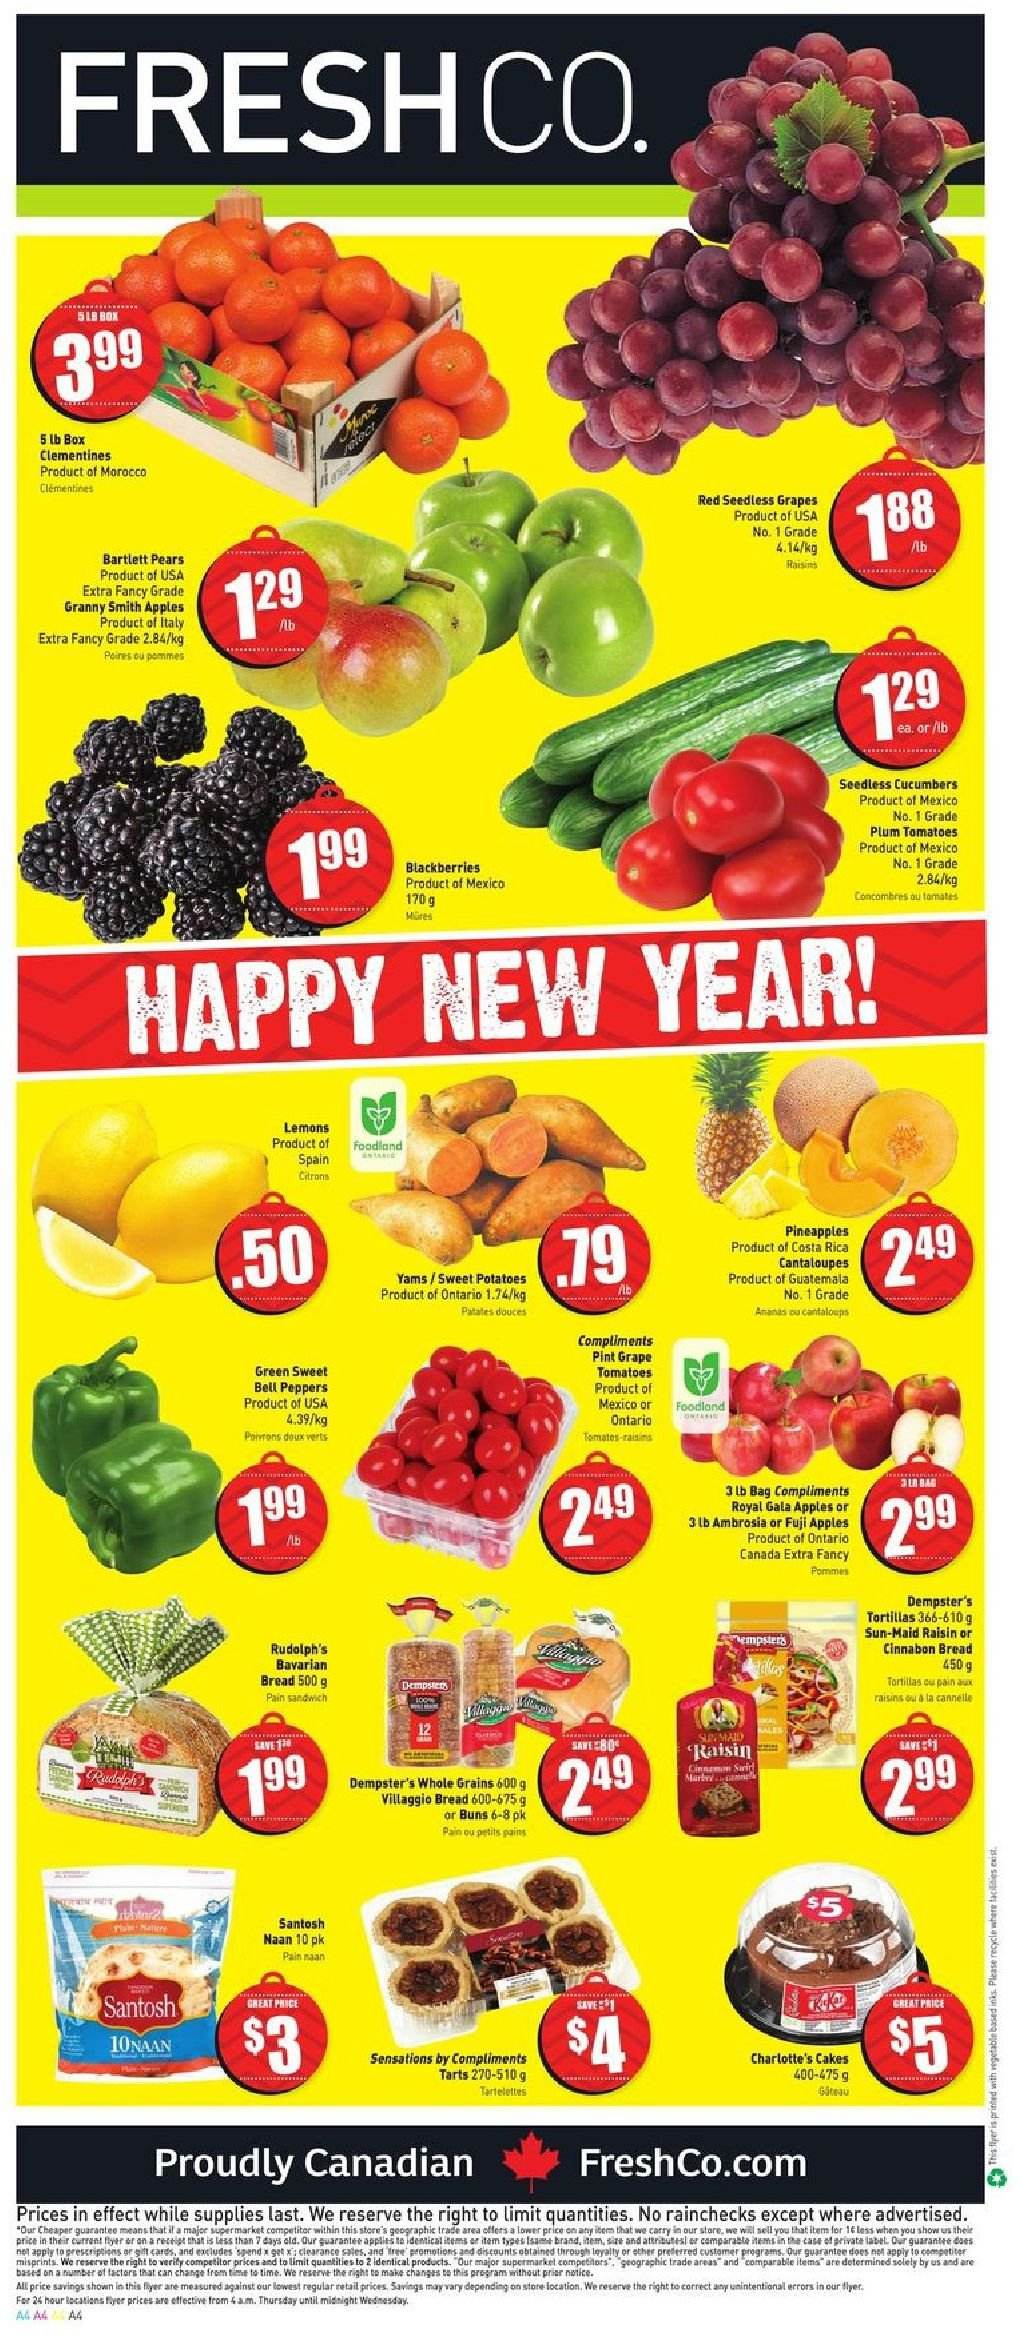 FreshCo. Flyer  - December 27, 2018 - January 02, 2019. Page 4.